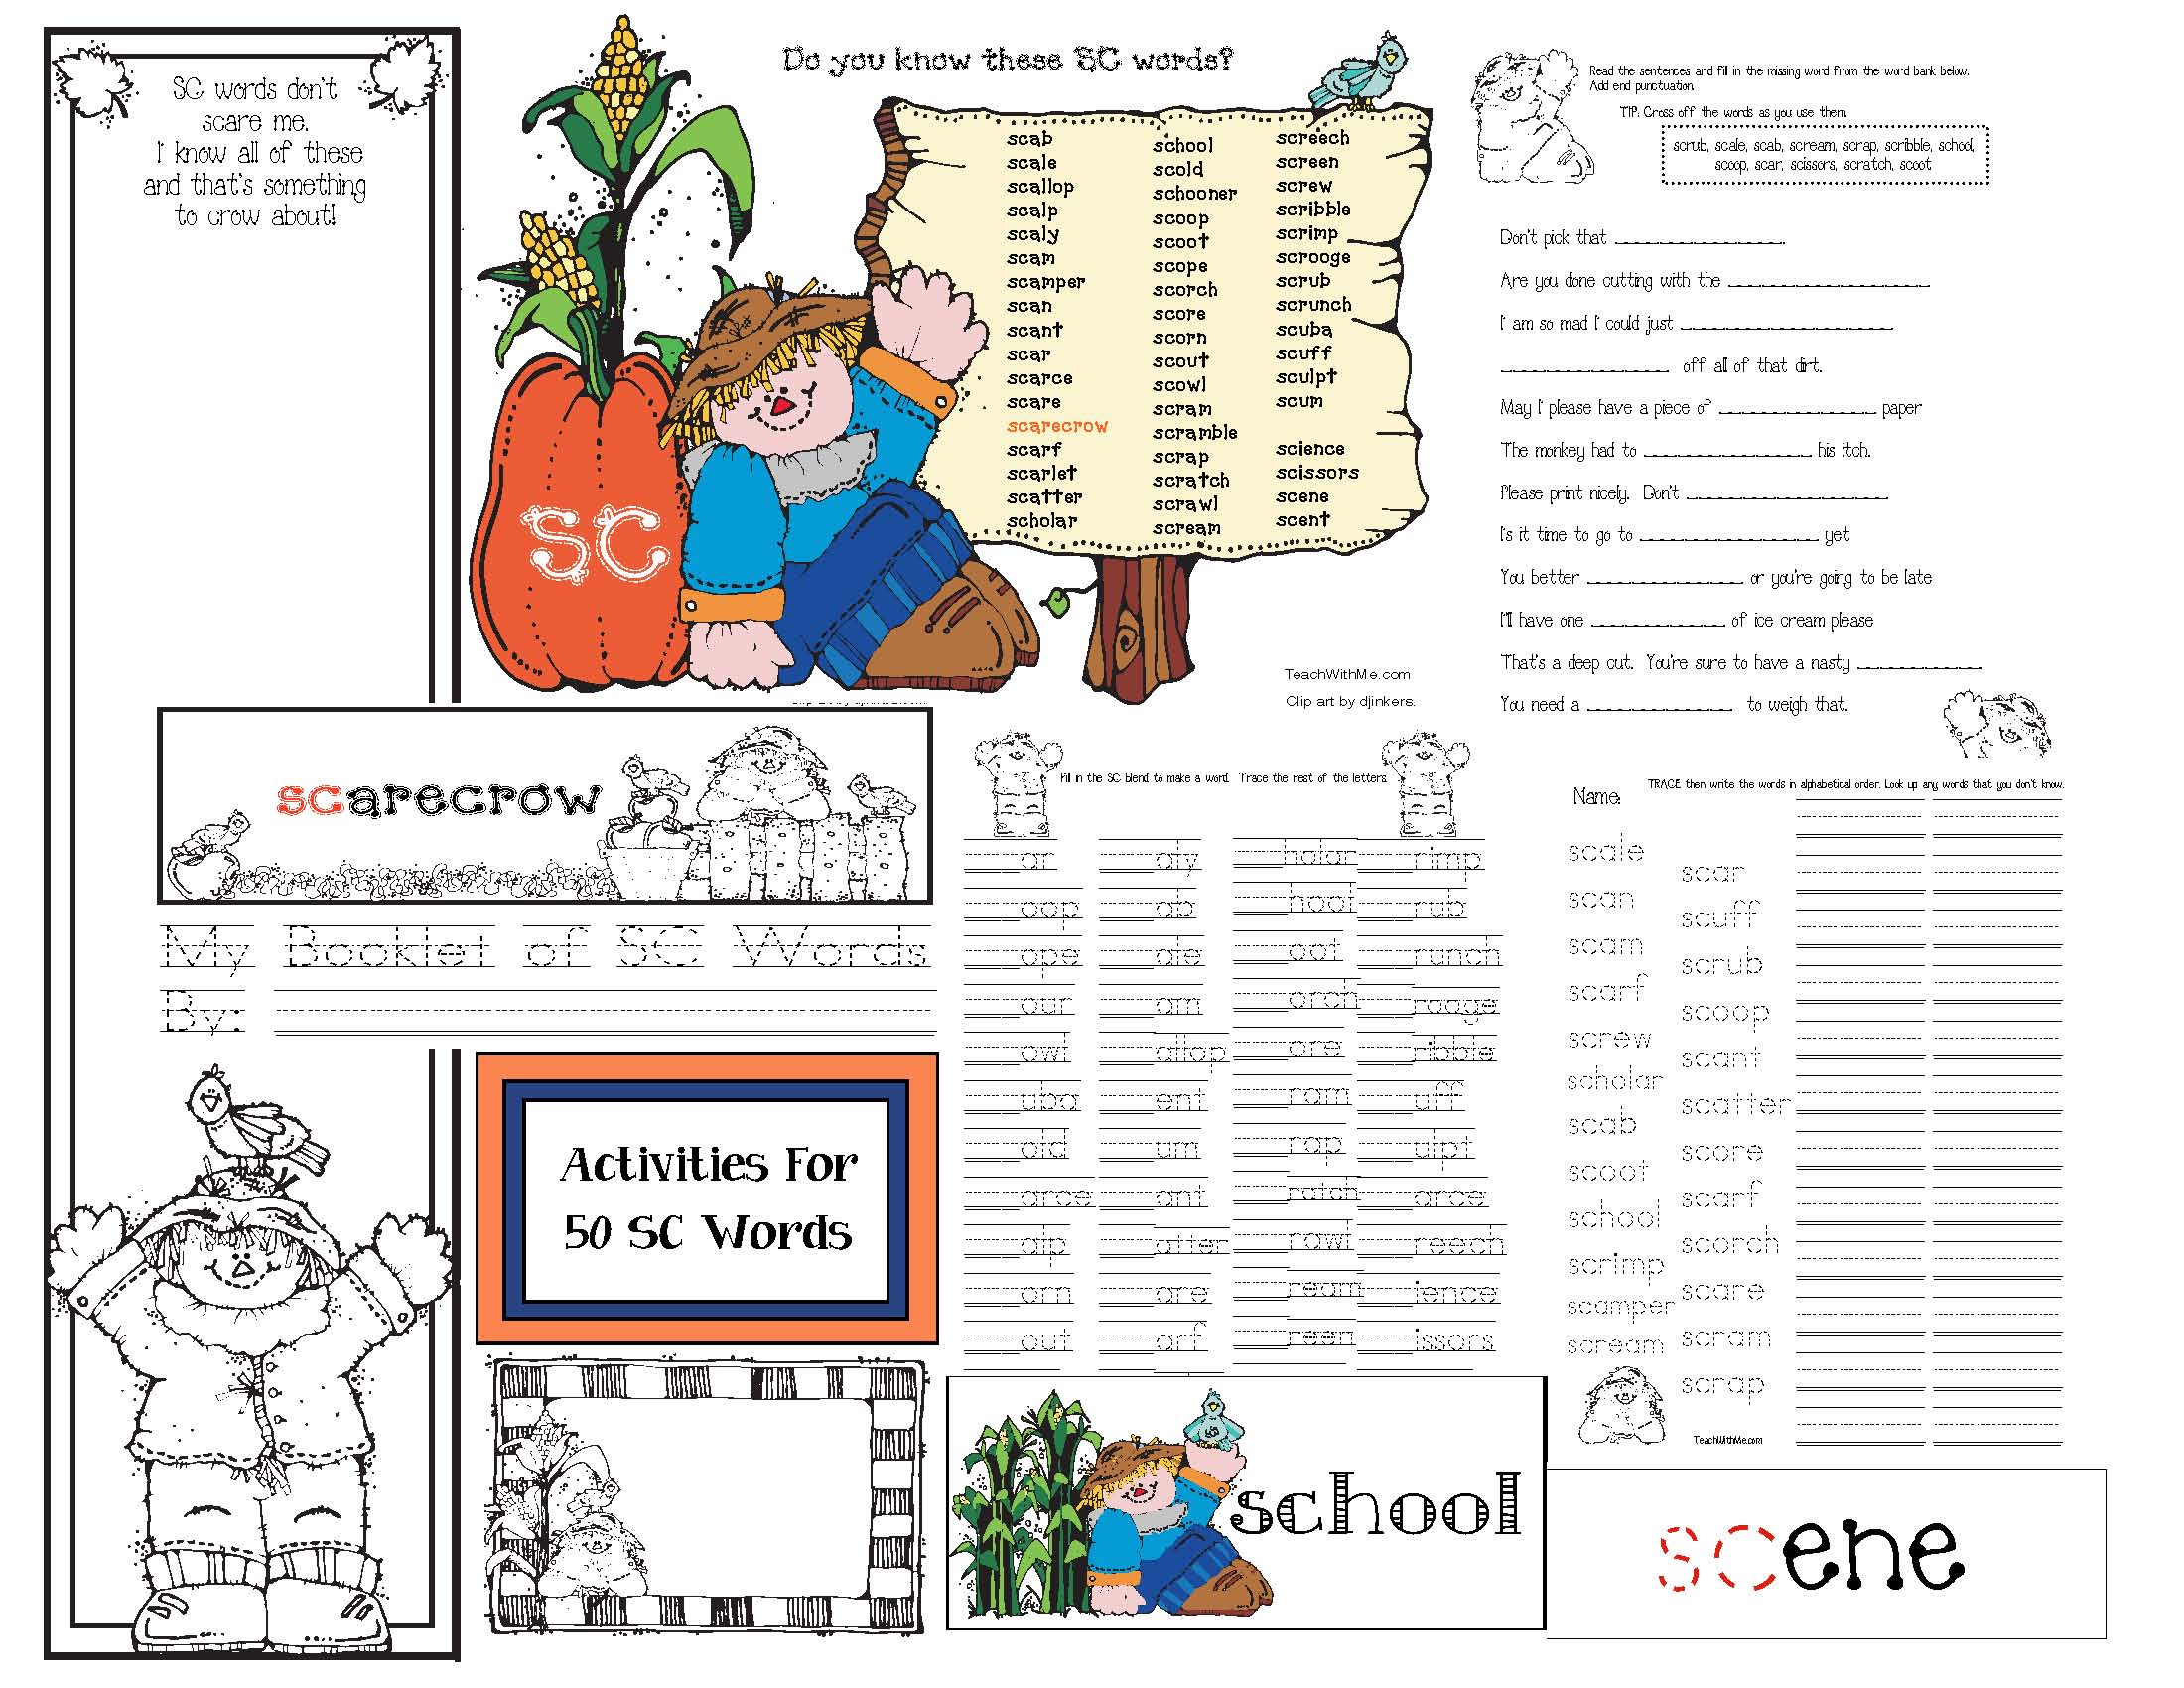 SC blend activities, scarecrow activities, common core scarecrows, sc blend word list, sc words, words that begin with sc, 50 words that begin with the sc blend, sc blend games, sc blend worksheets, sc blend dictionaries,